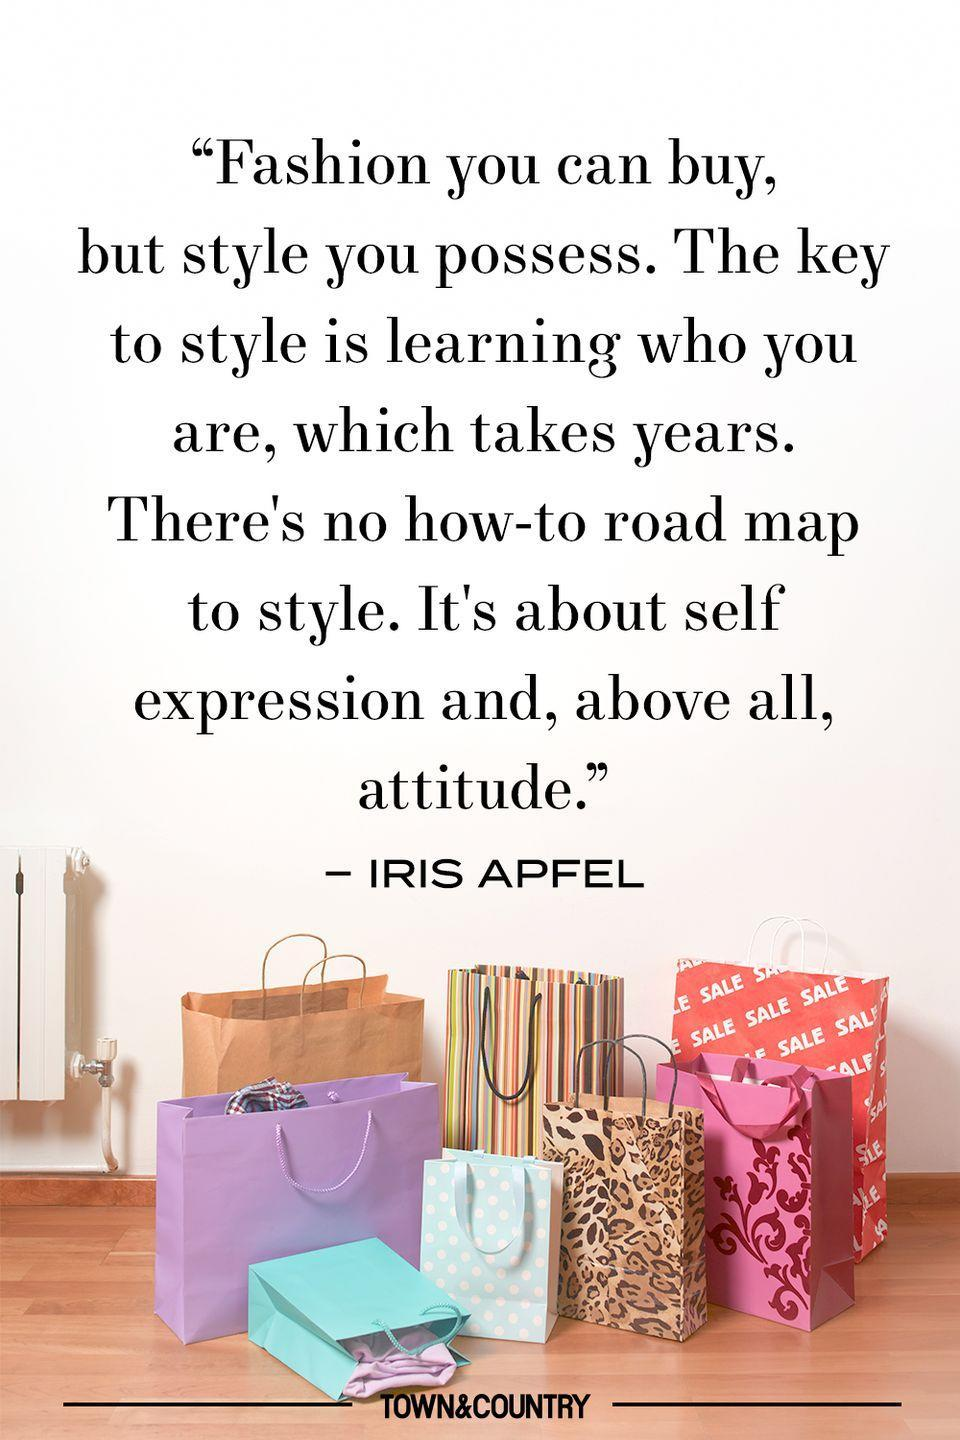 """<p>""""Fashion you can buy, but style you possess. The key to style is learning who you are, which takes years. There's no how-to road map to style. It's about self expression and, above all, attitude."""" </p><p>– Iris Apfel </p>"""